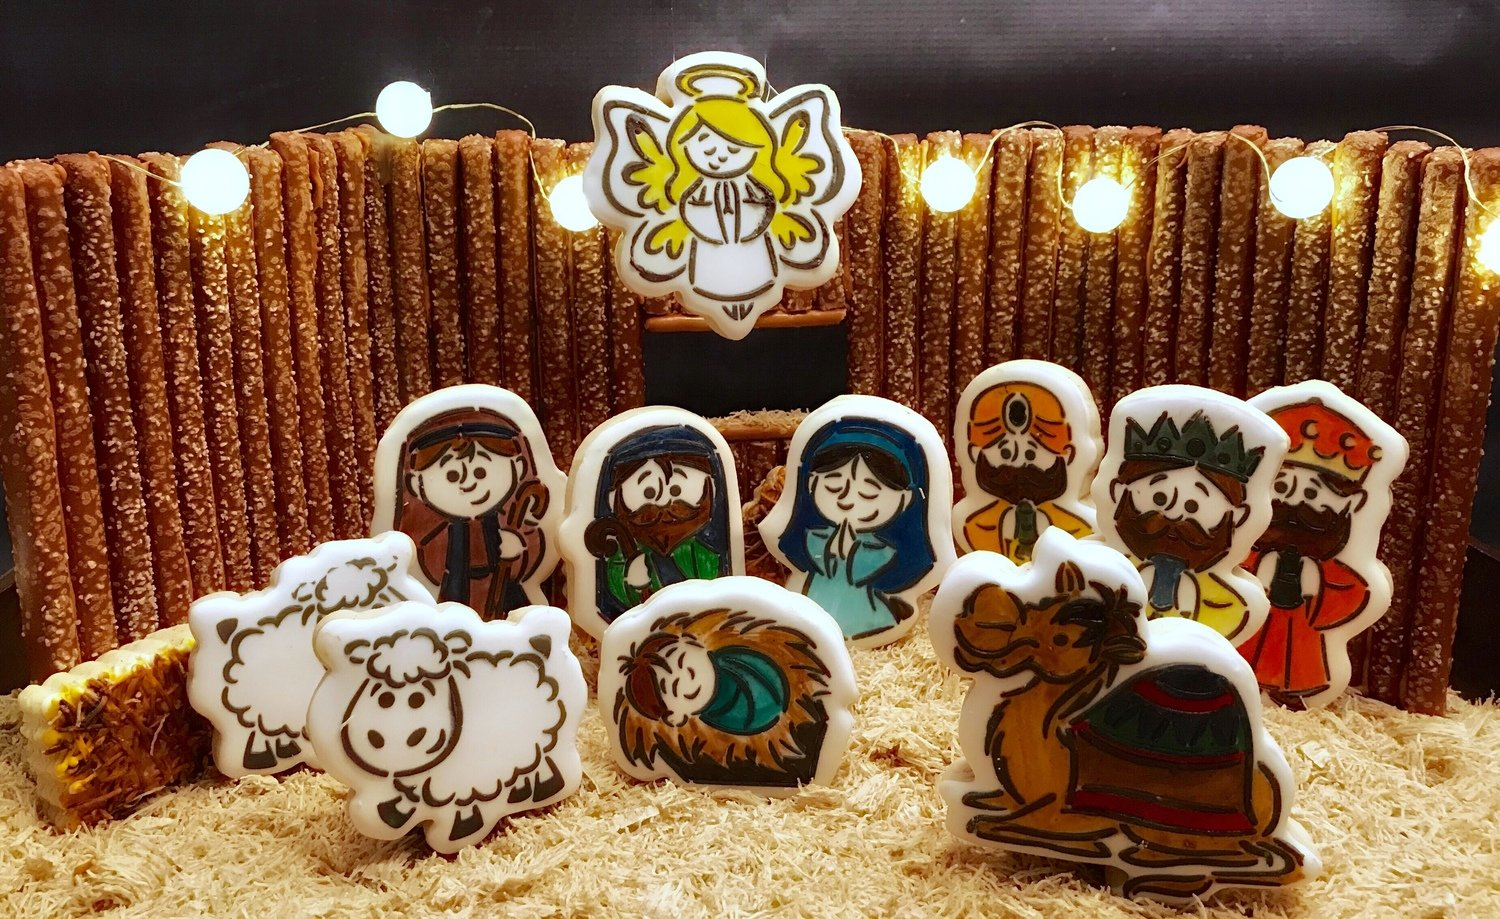 Manger Set 04 (10 Cutter Set, WM 01, 02, 03, Shepherd, Joseph, Mary, Baby Jesus, Sheep, Camel, Angel)